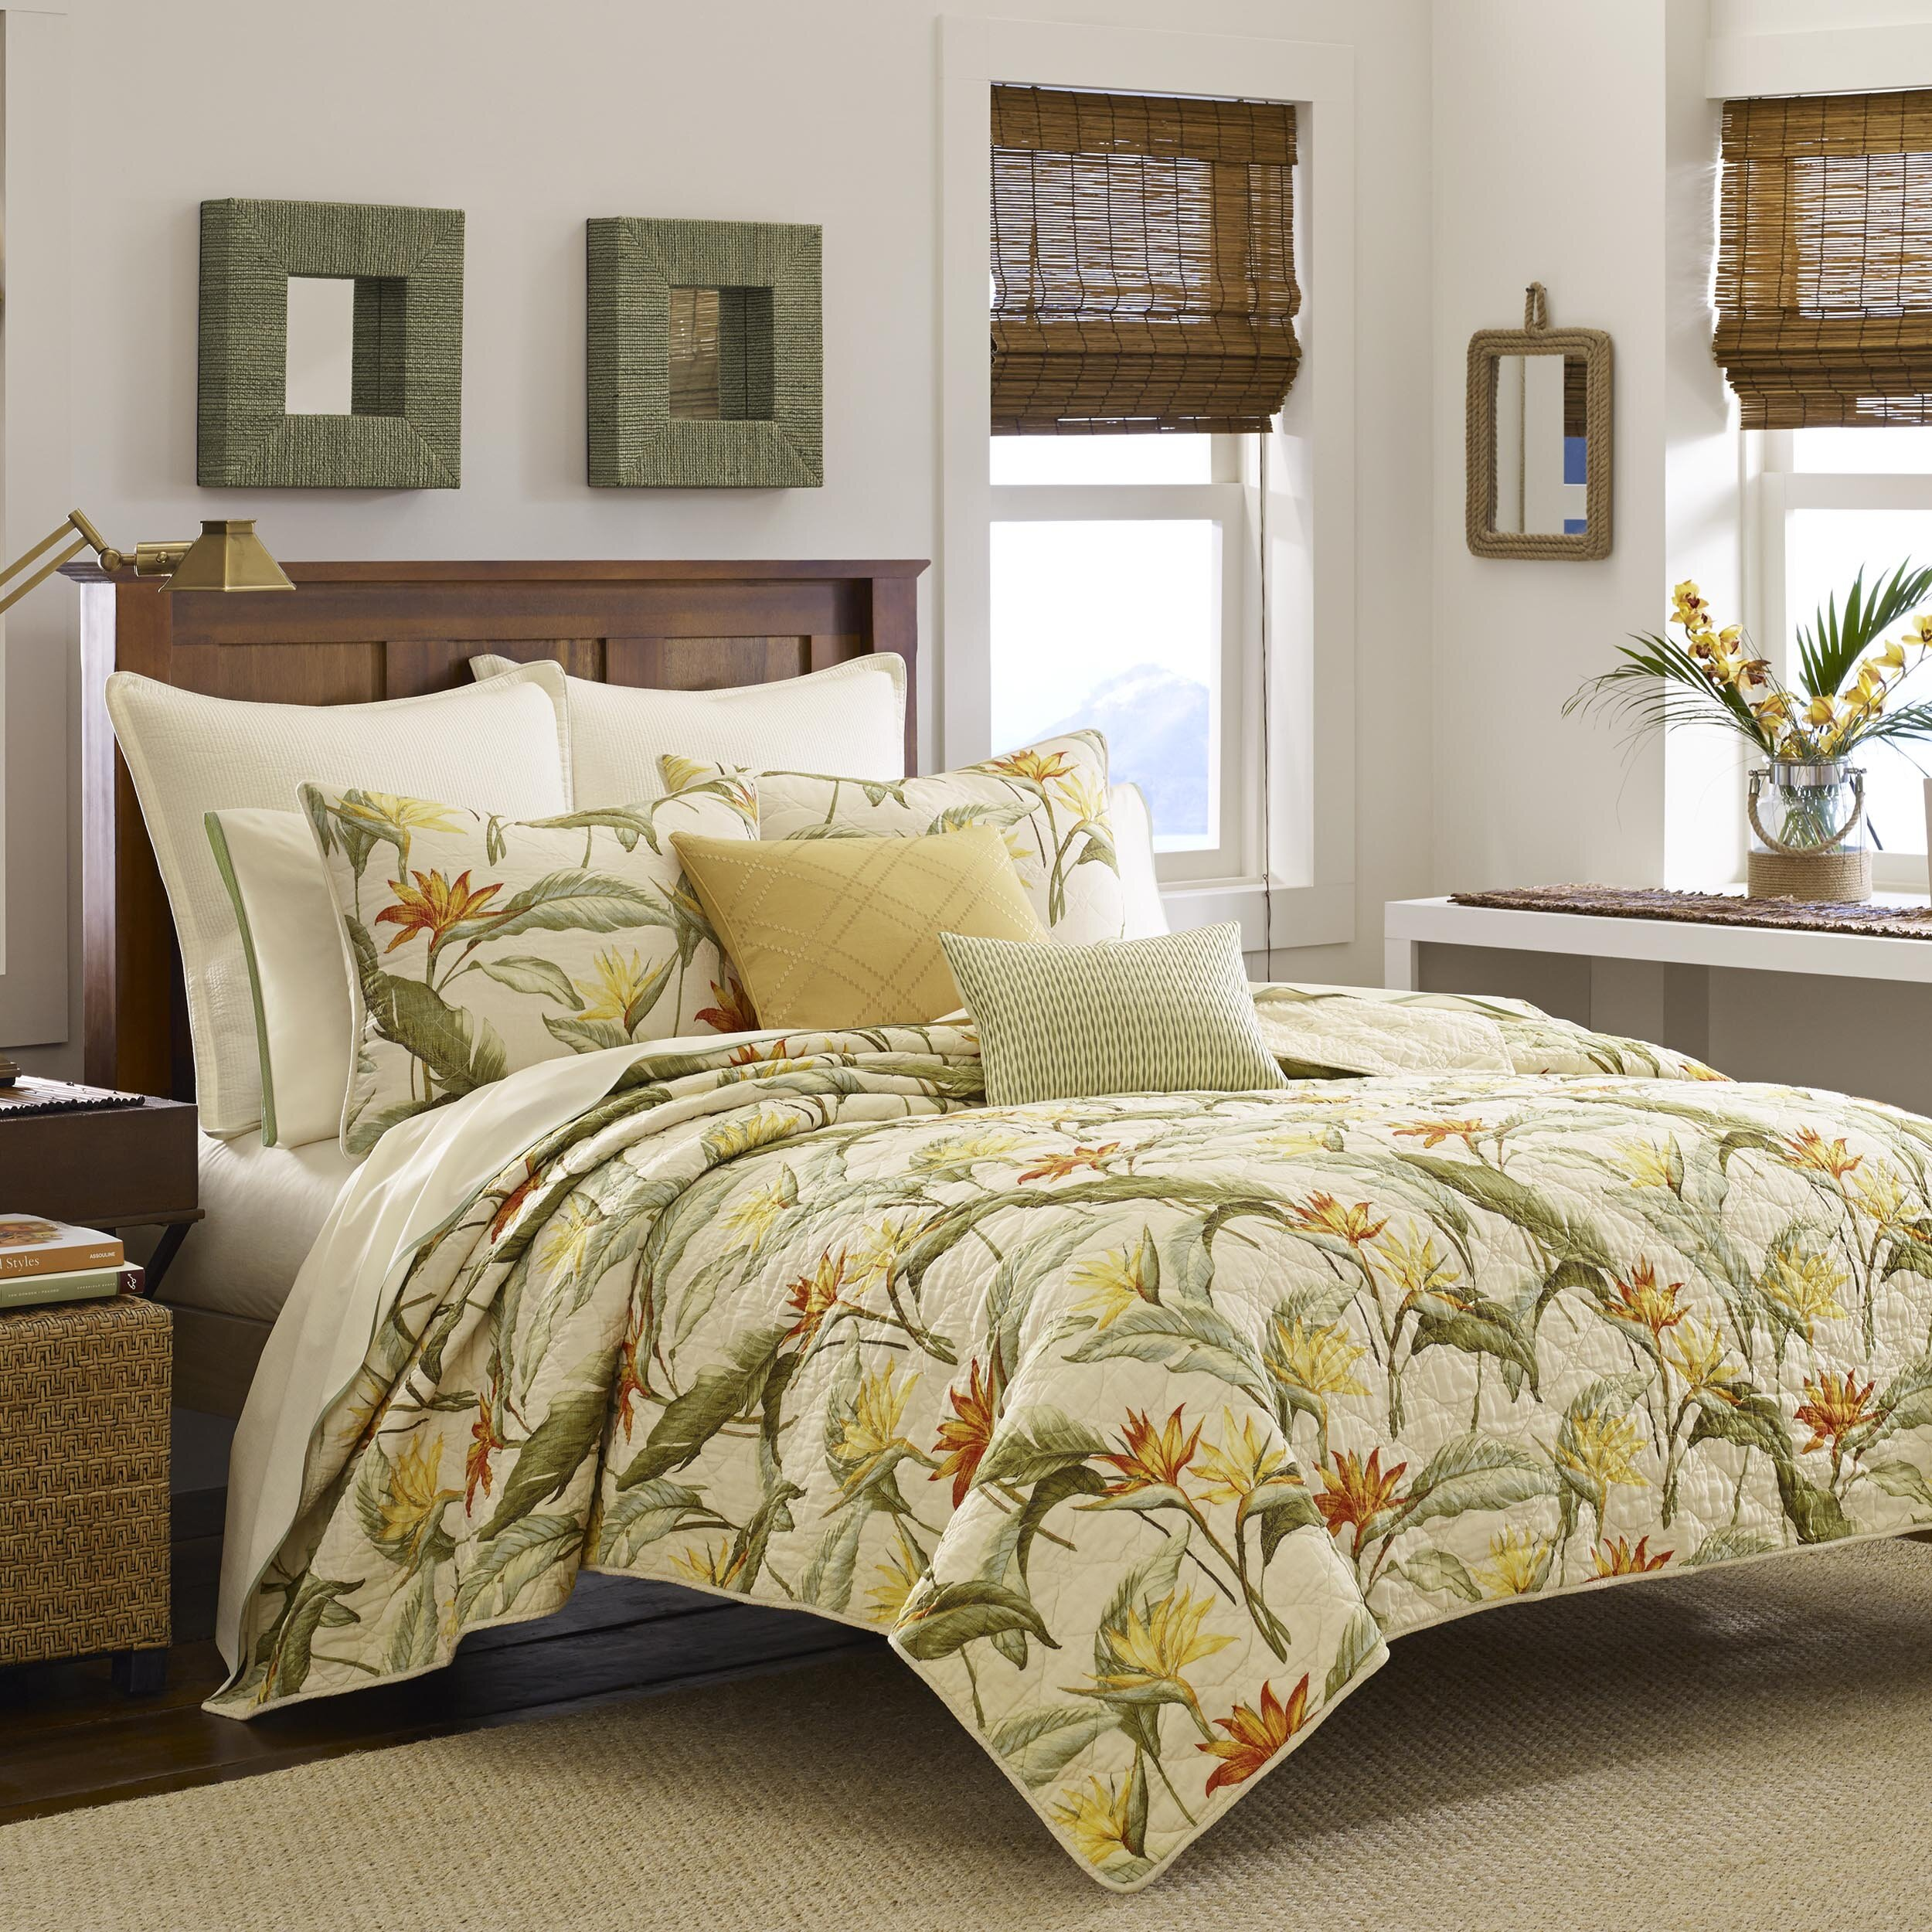 Tommy bahama bedding birds of paradise quilt collection Tommy bahama bedding